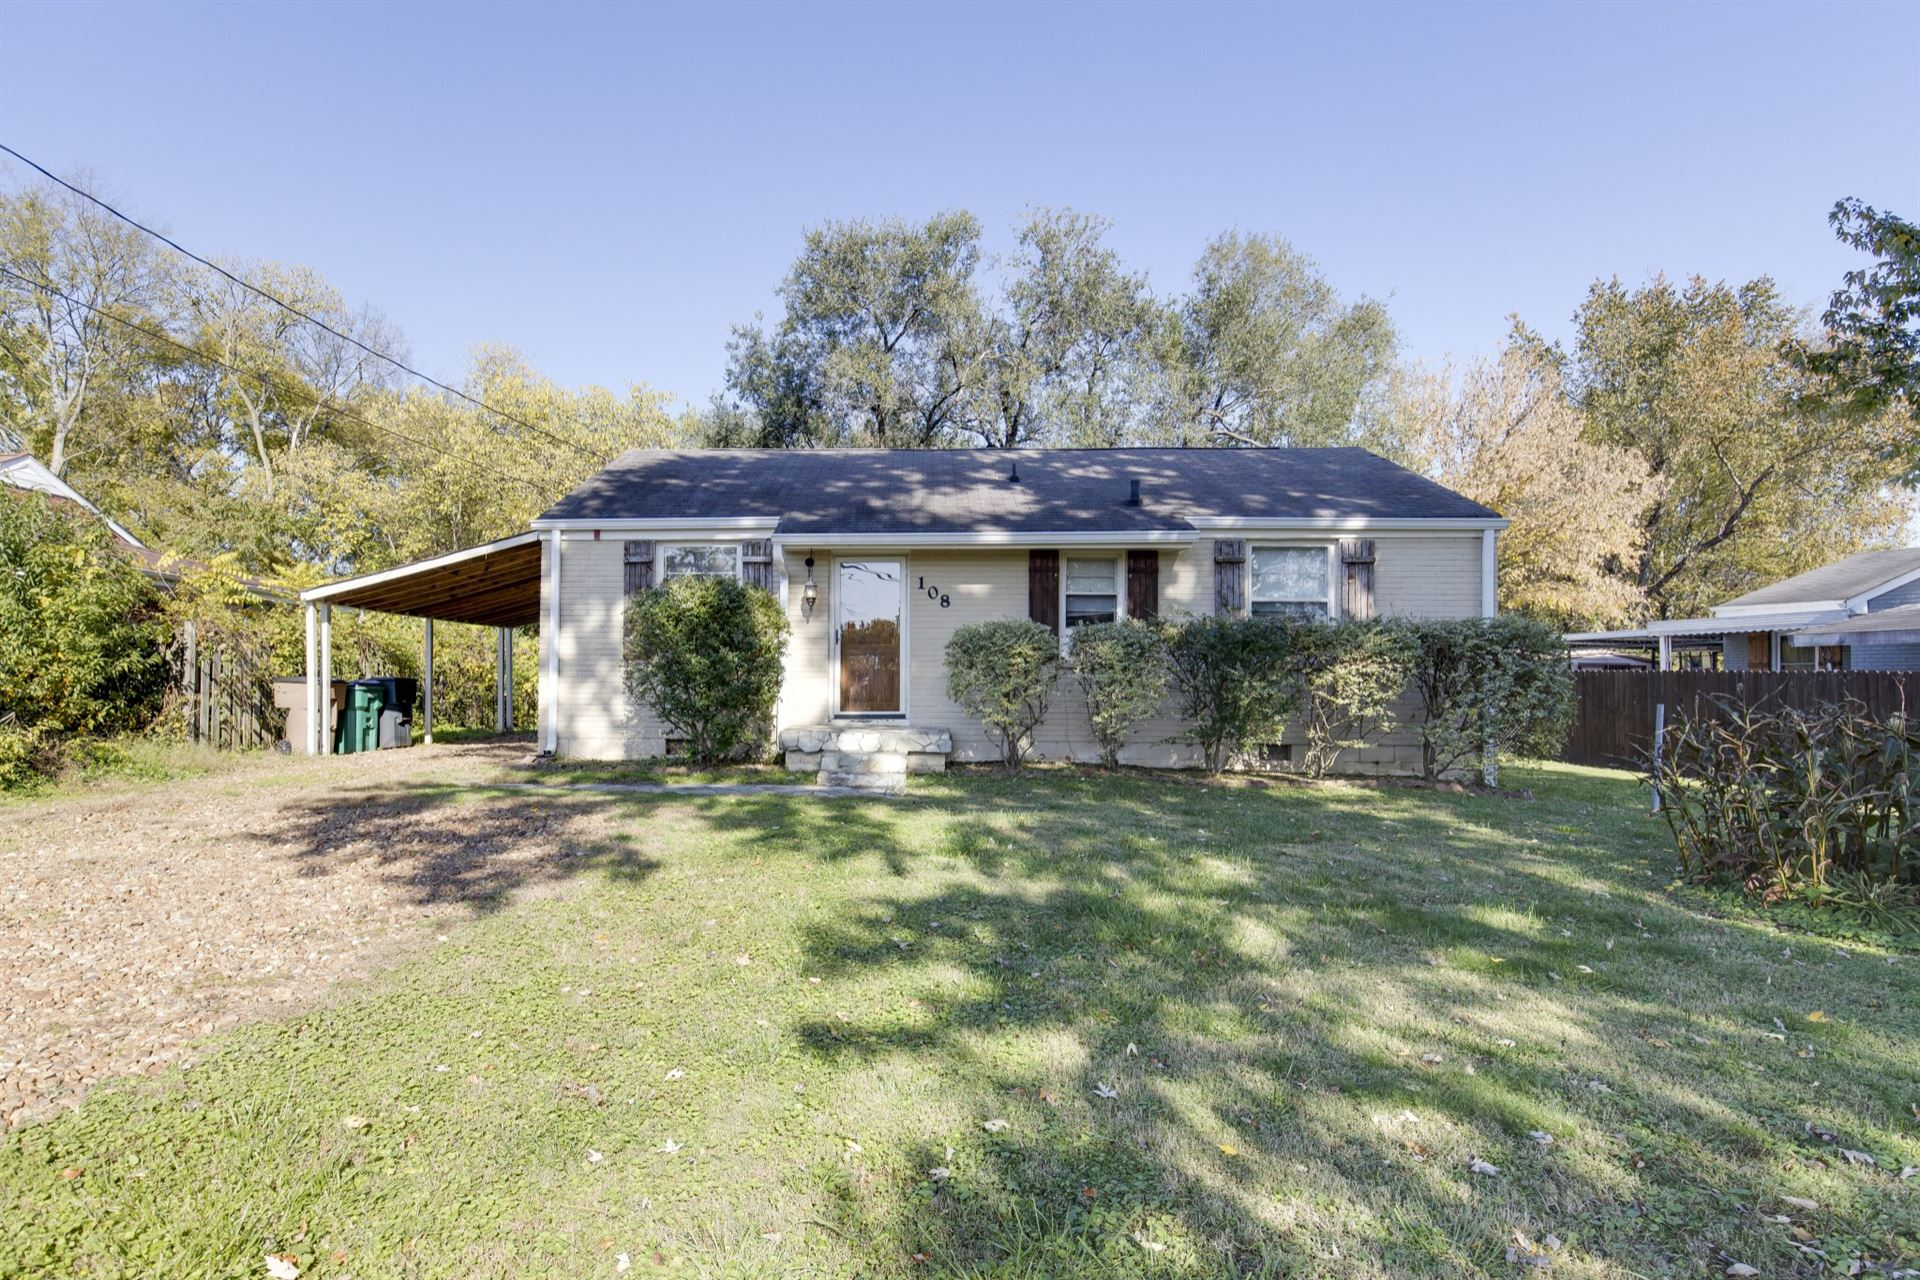 108 Stirton Rd, Nashville, TN 37210 - MLS#: 2205412